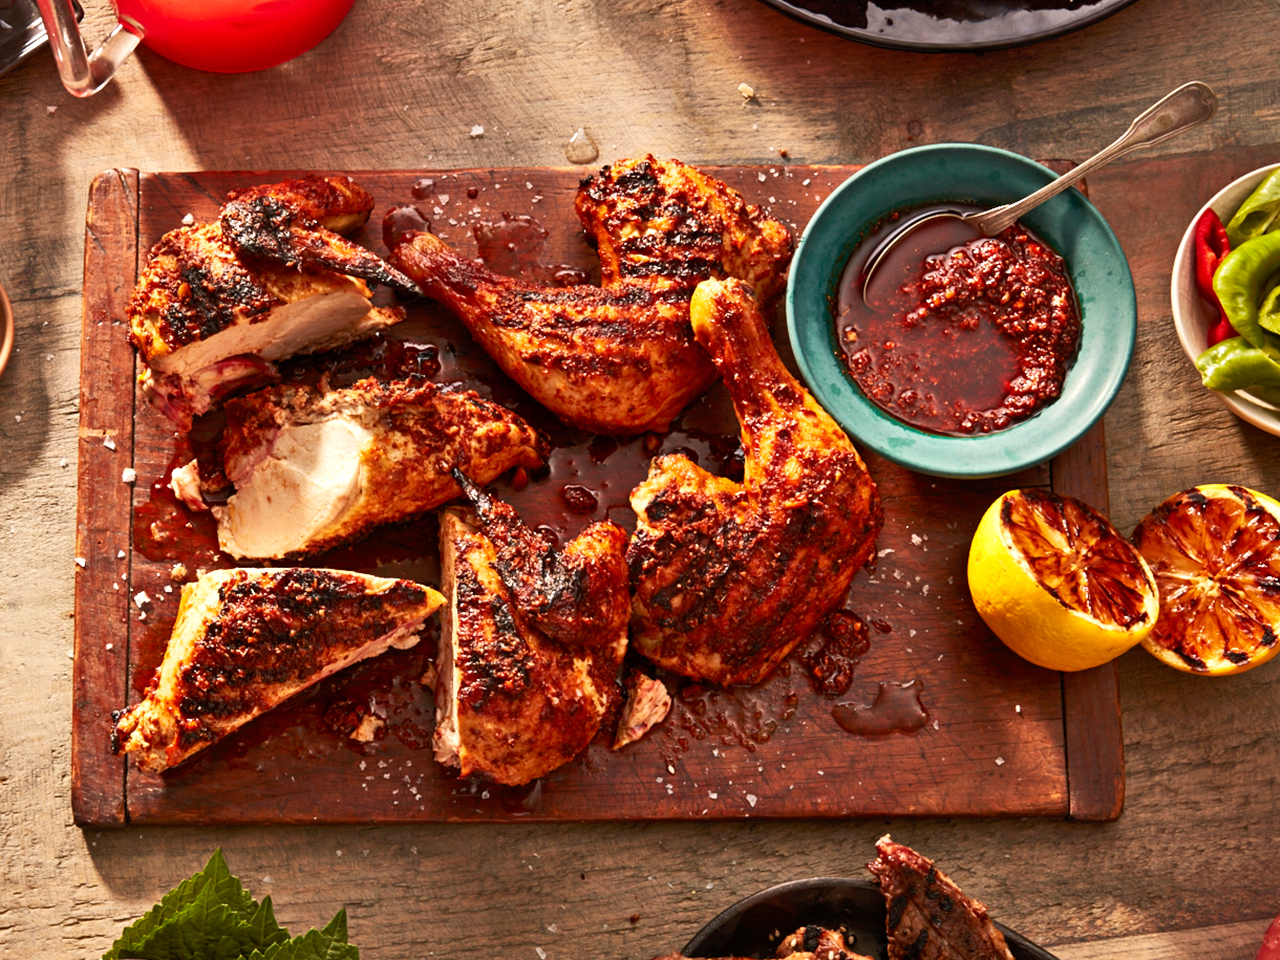 Barbecue menus: Harissa yogurt grilled chicken recipe